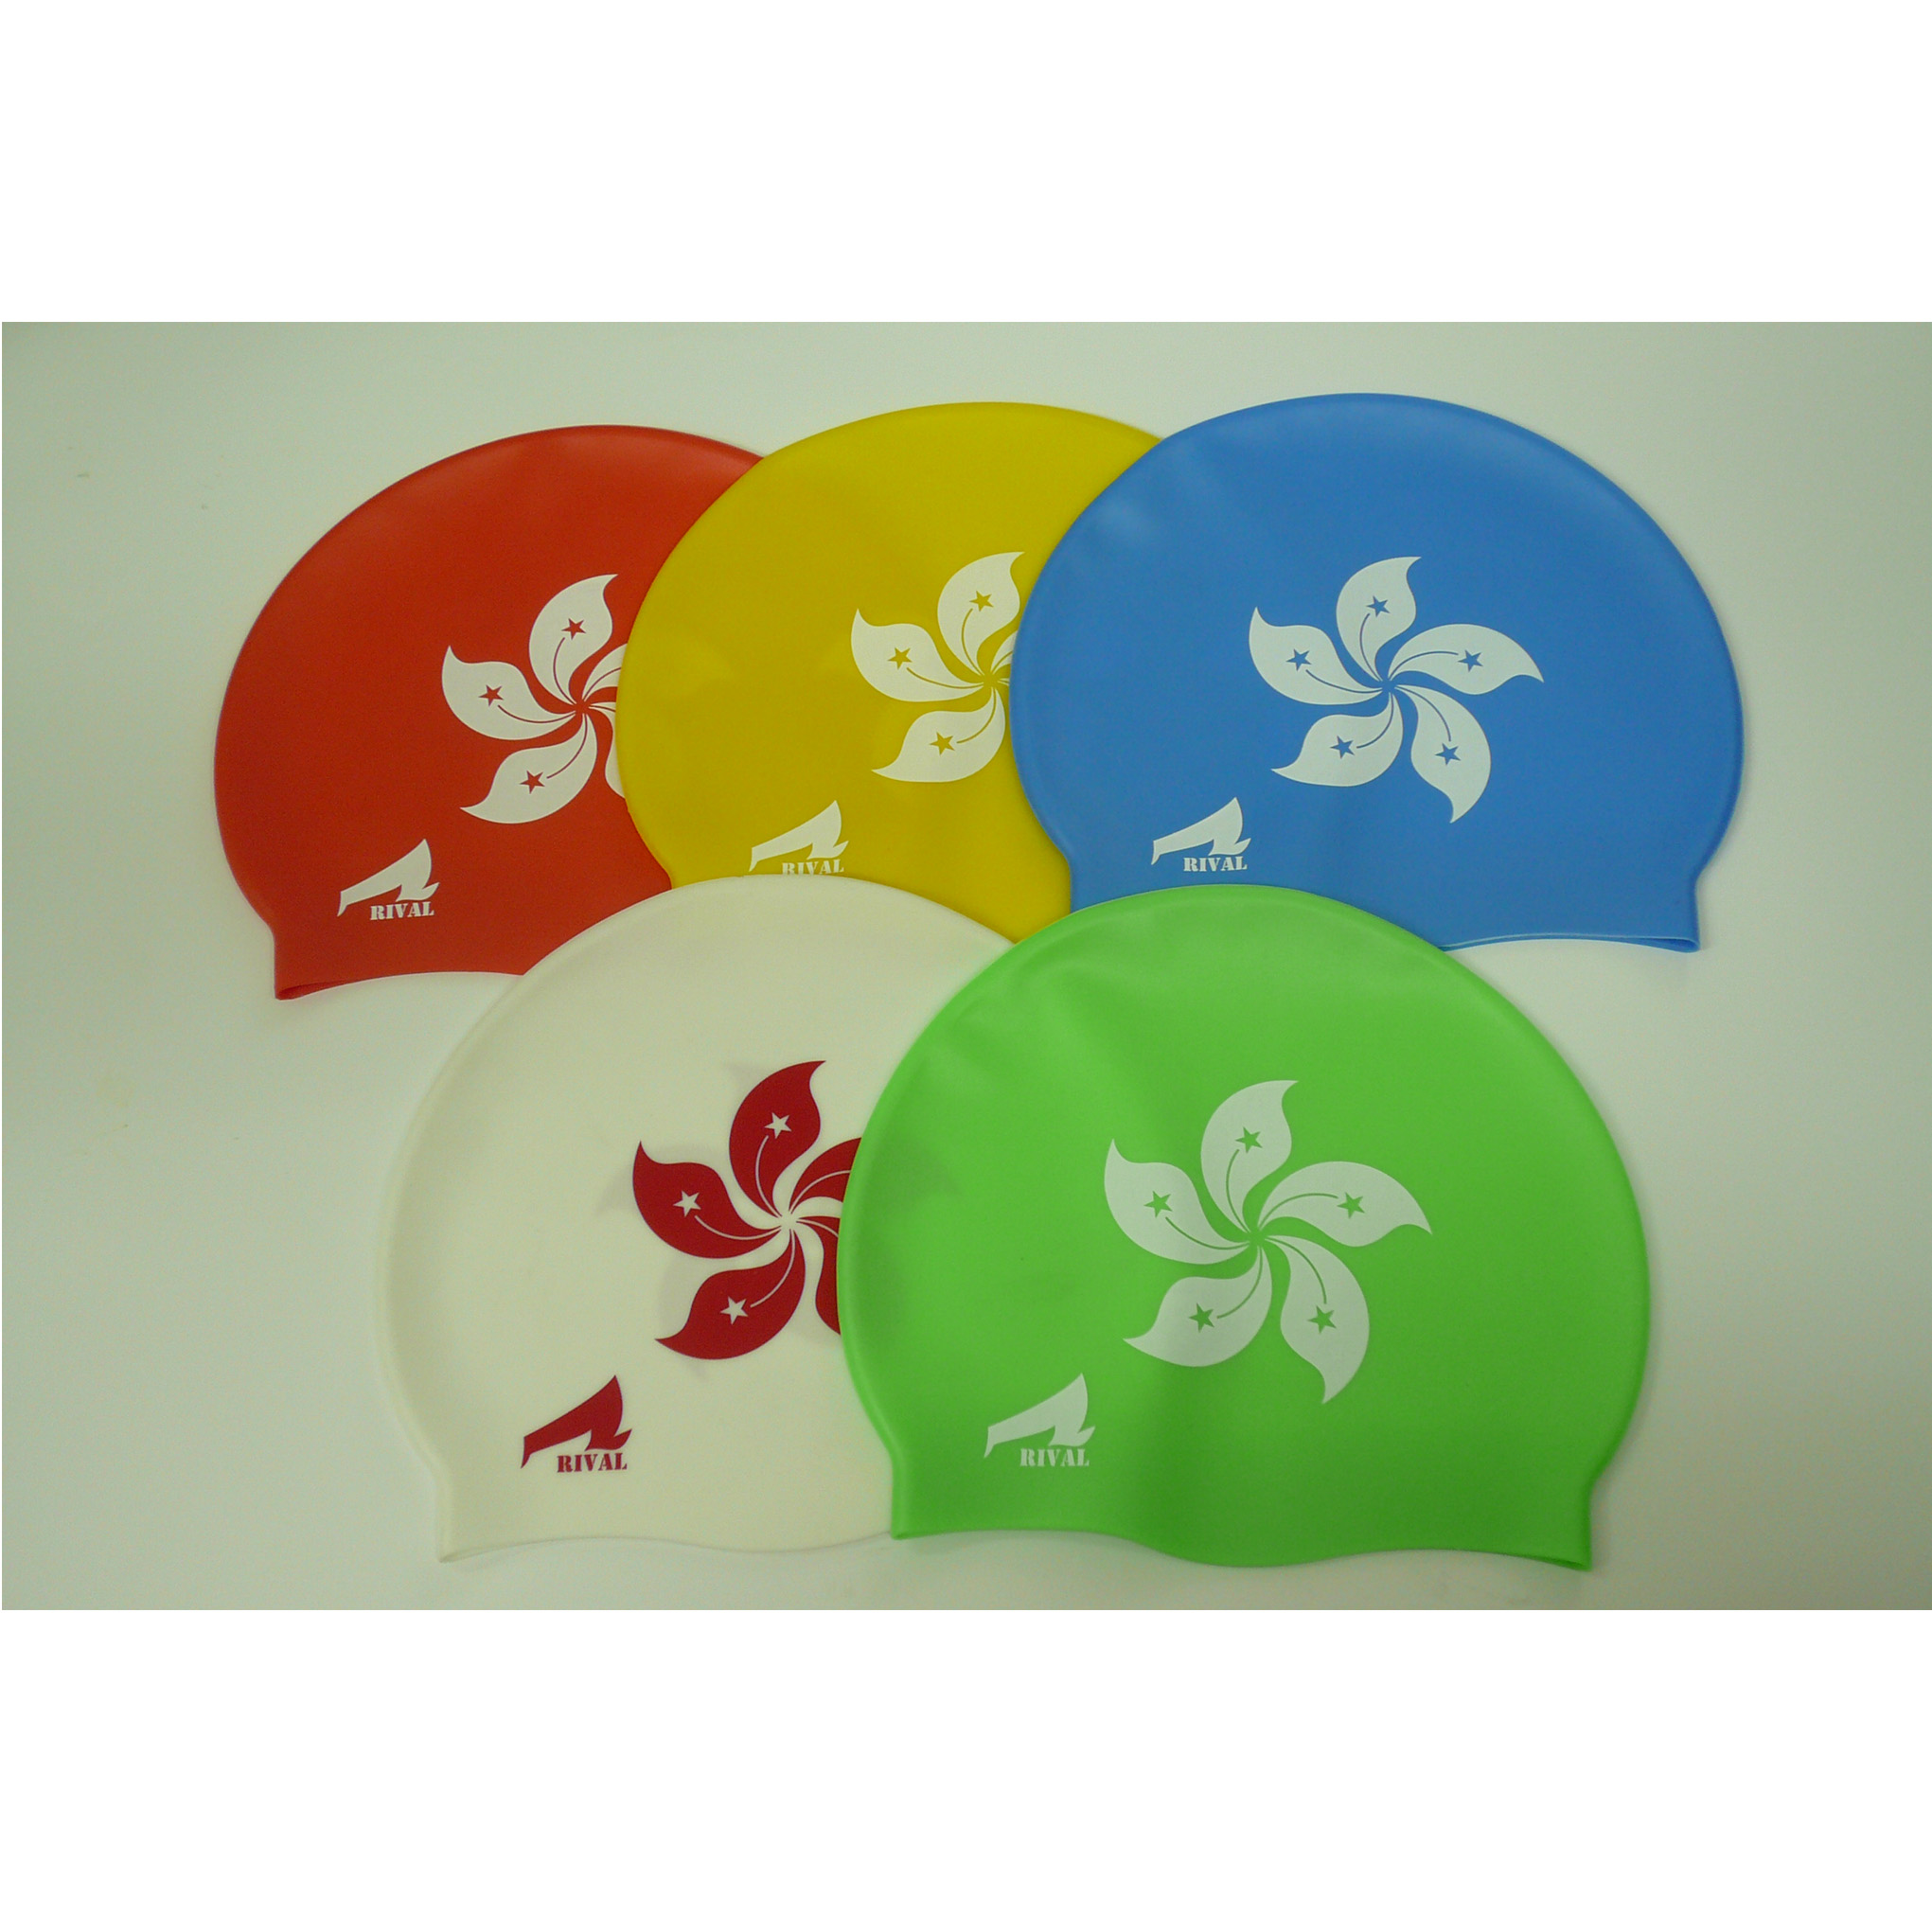 Swimming caps (Regional flag cap)